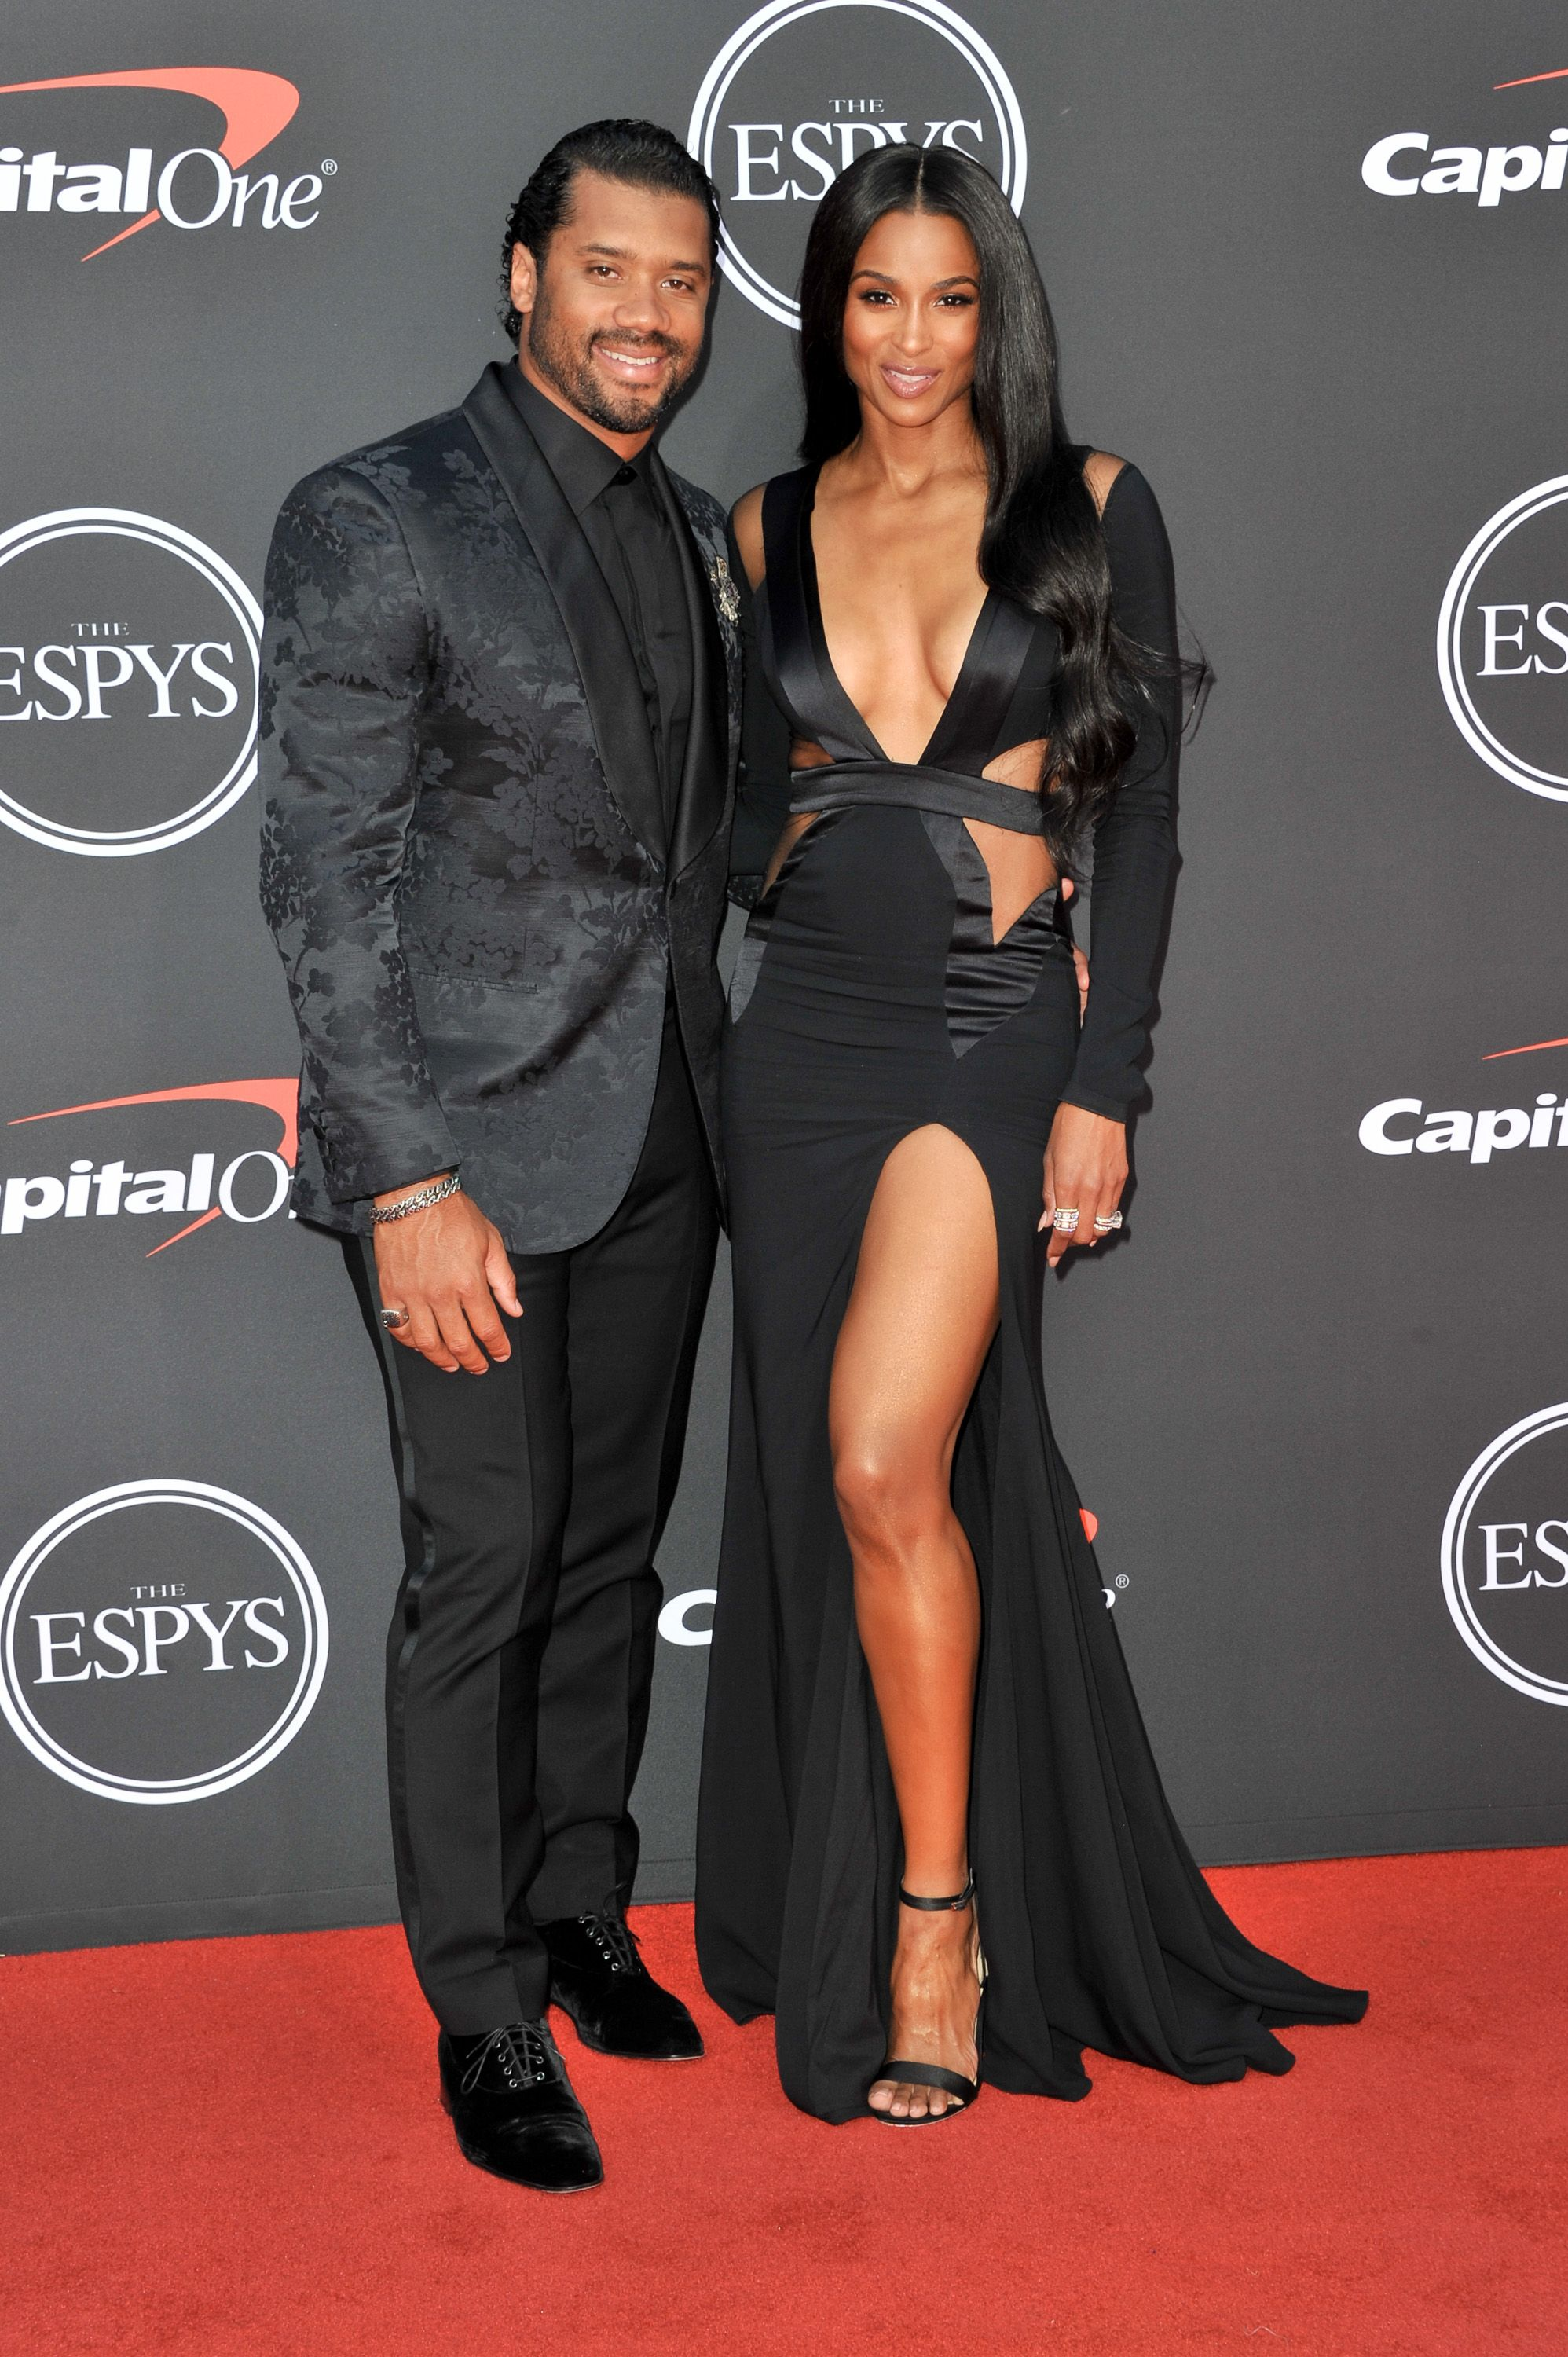 Ciara And Russell Wilson Share Baby Gender Reveal On Social Media